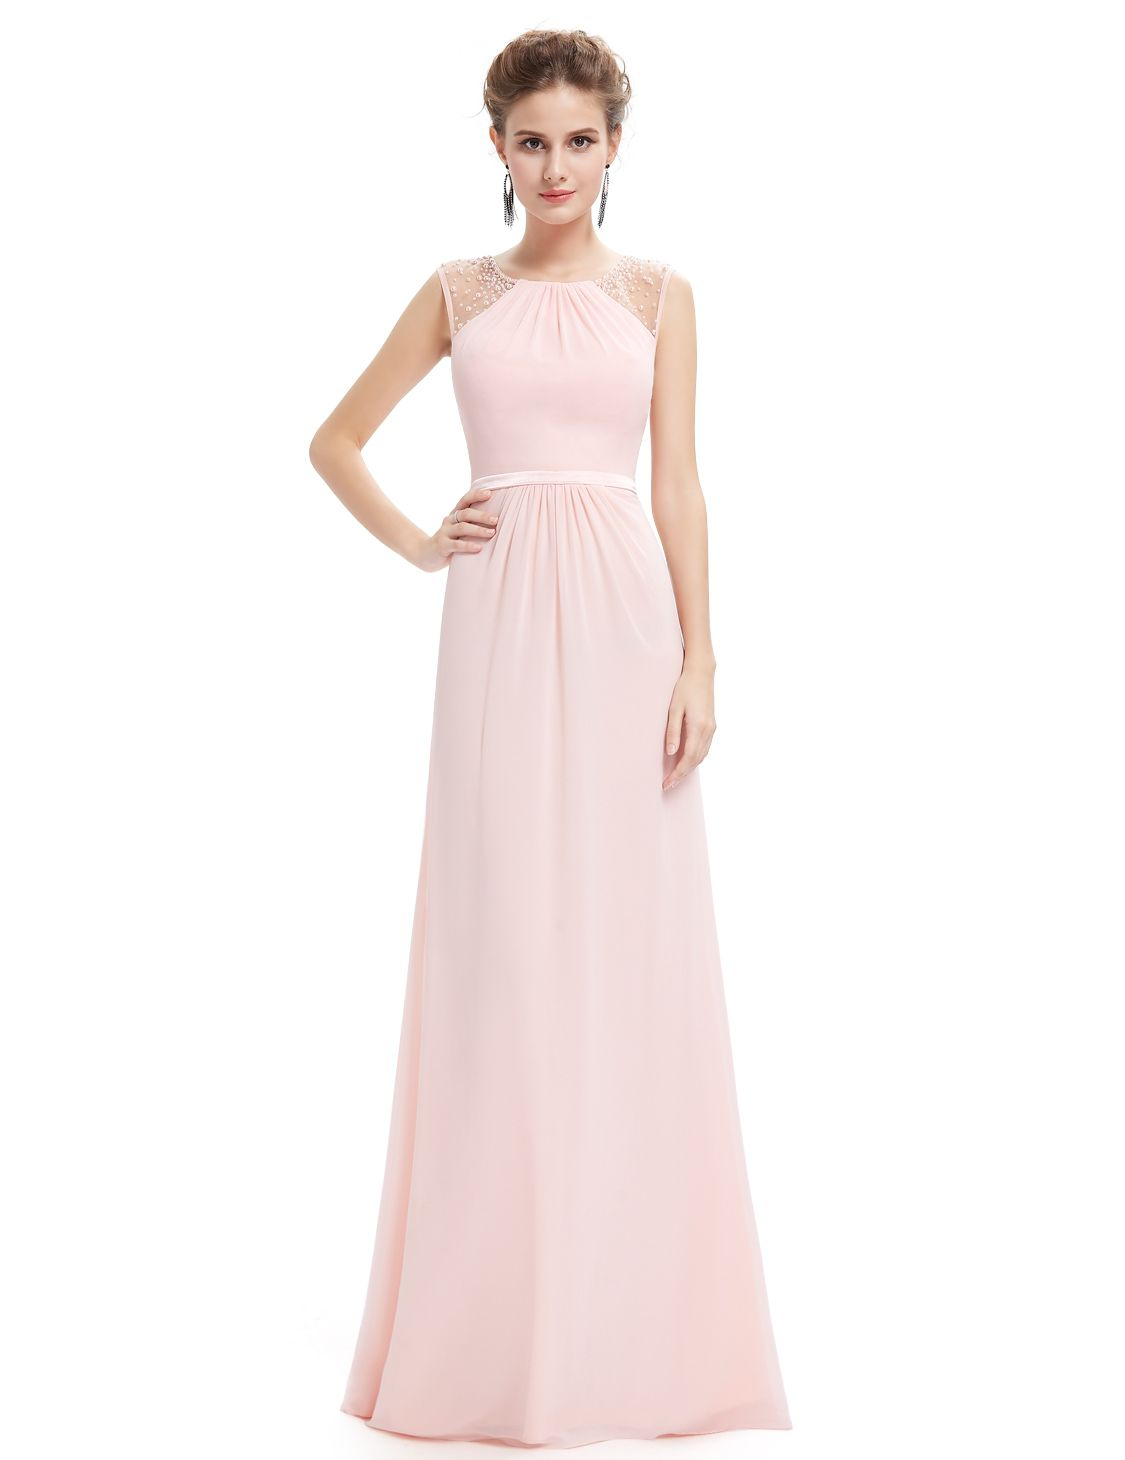 My brides maid dresses  Pink long prom dress! Beautiful dress for prom party ! d478d7307